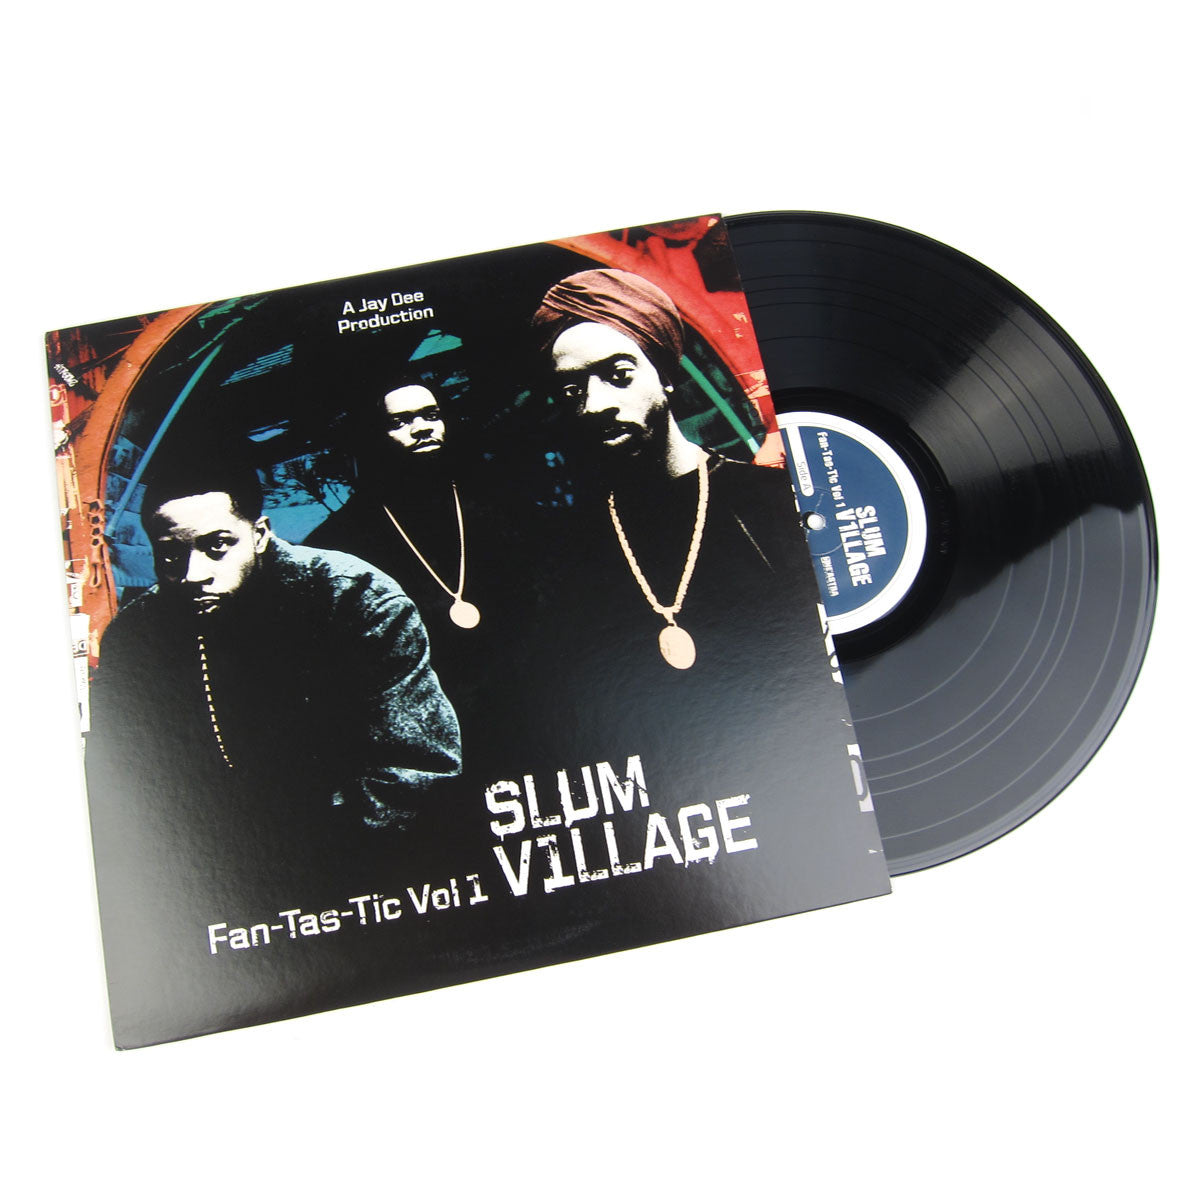 Slum Village: Fan-Tas-Tic Vol.1 Vinyl 2LP